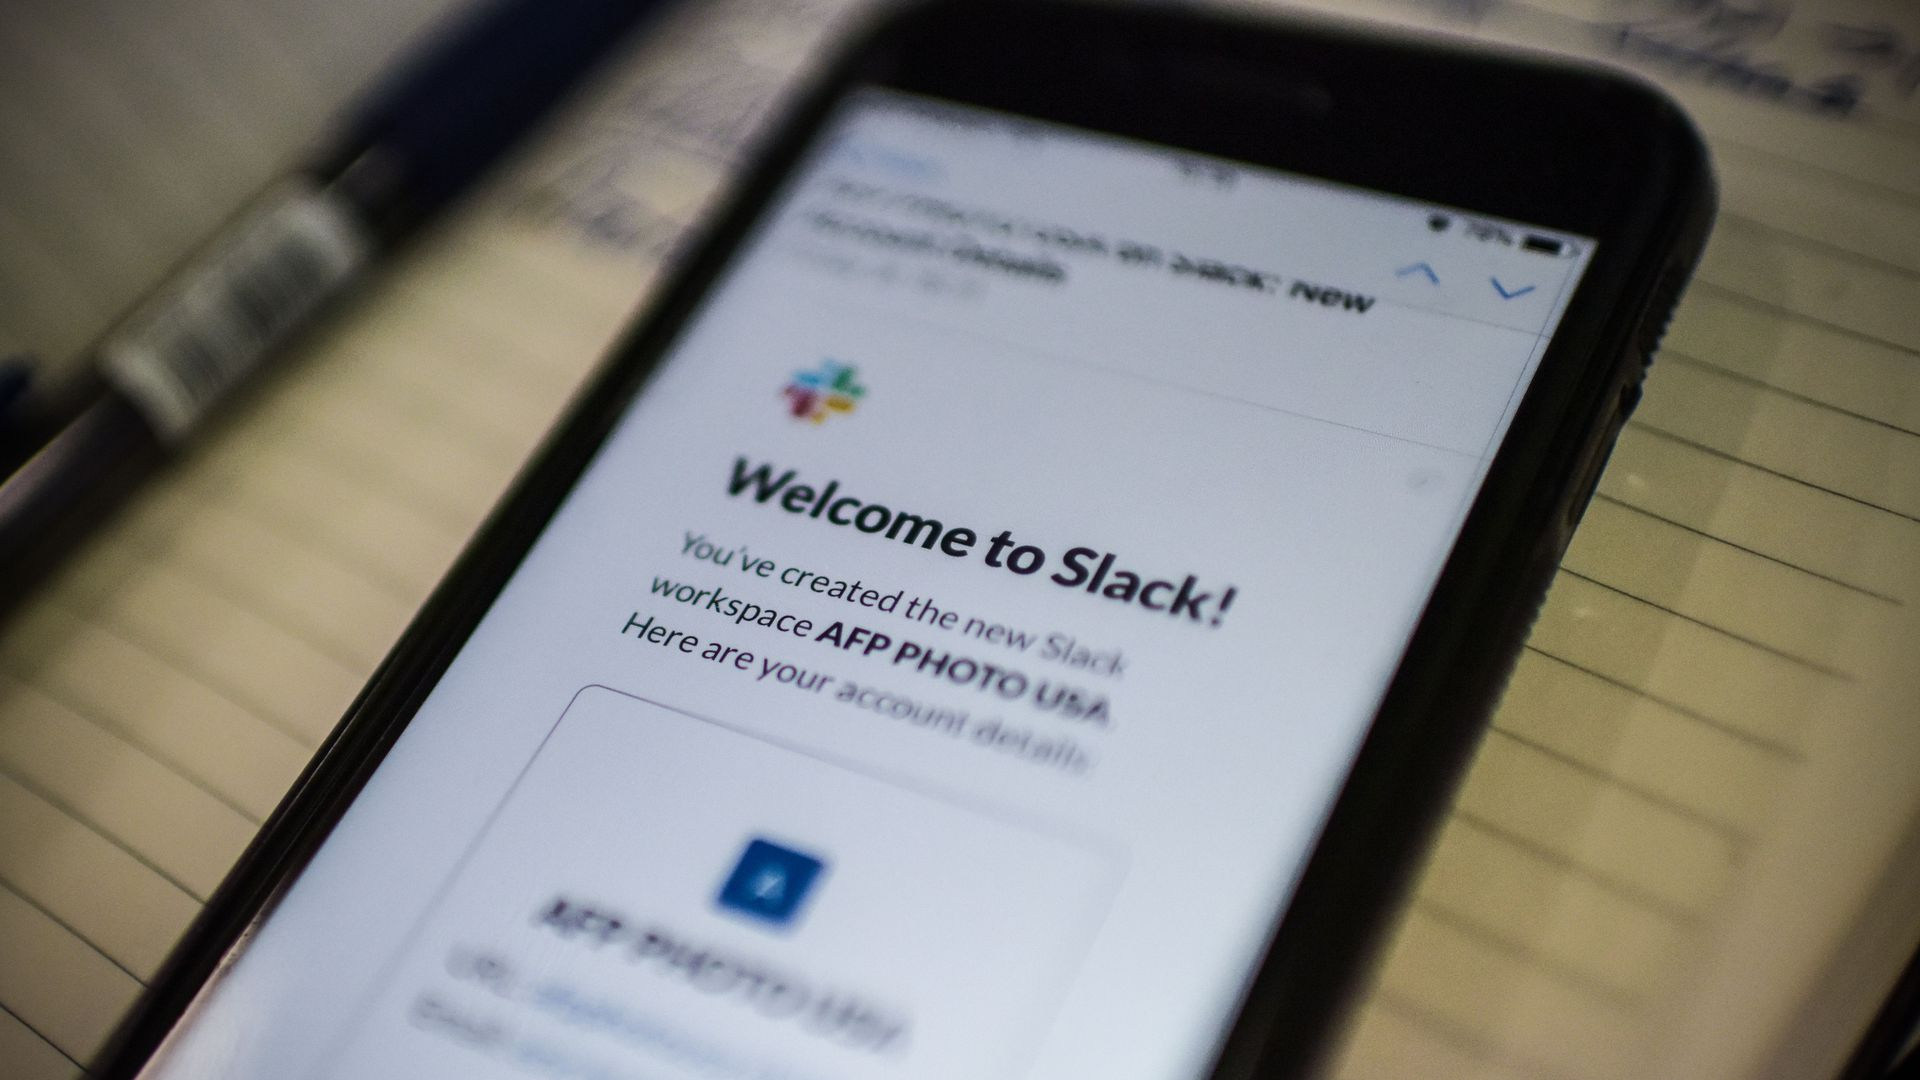 An image of a phone logging into messaging app Slack.